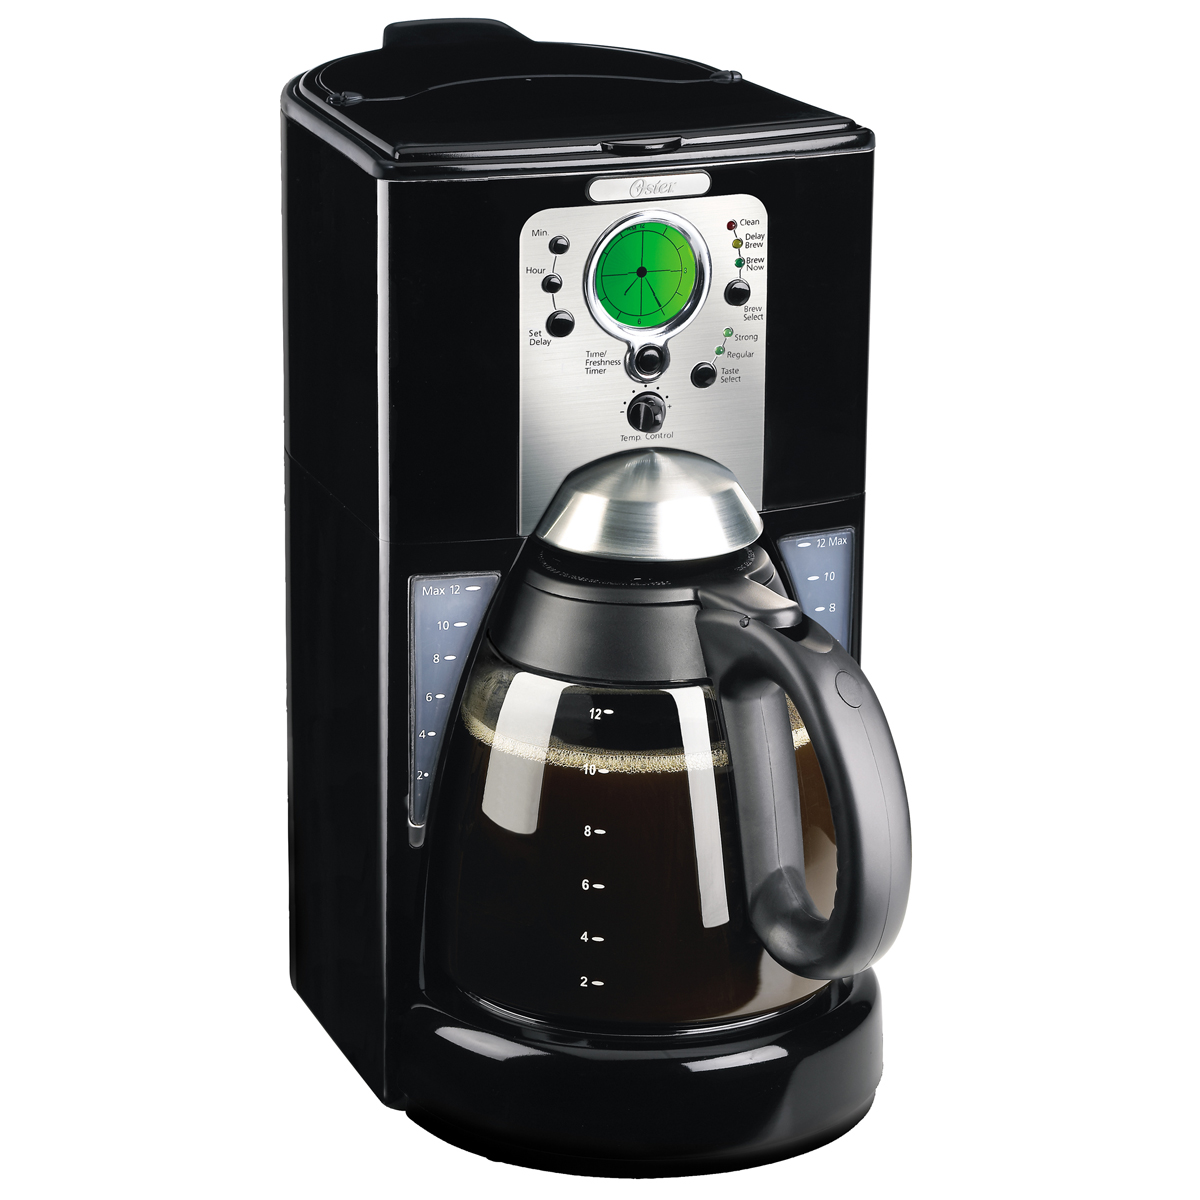 Oster 12 Cup Programmable Coffee Maker 7985 33 Parts: coffee maker brands